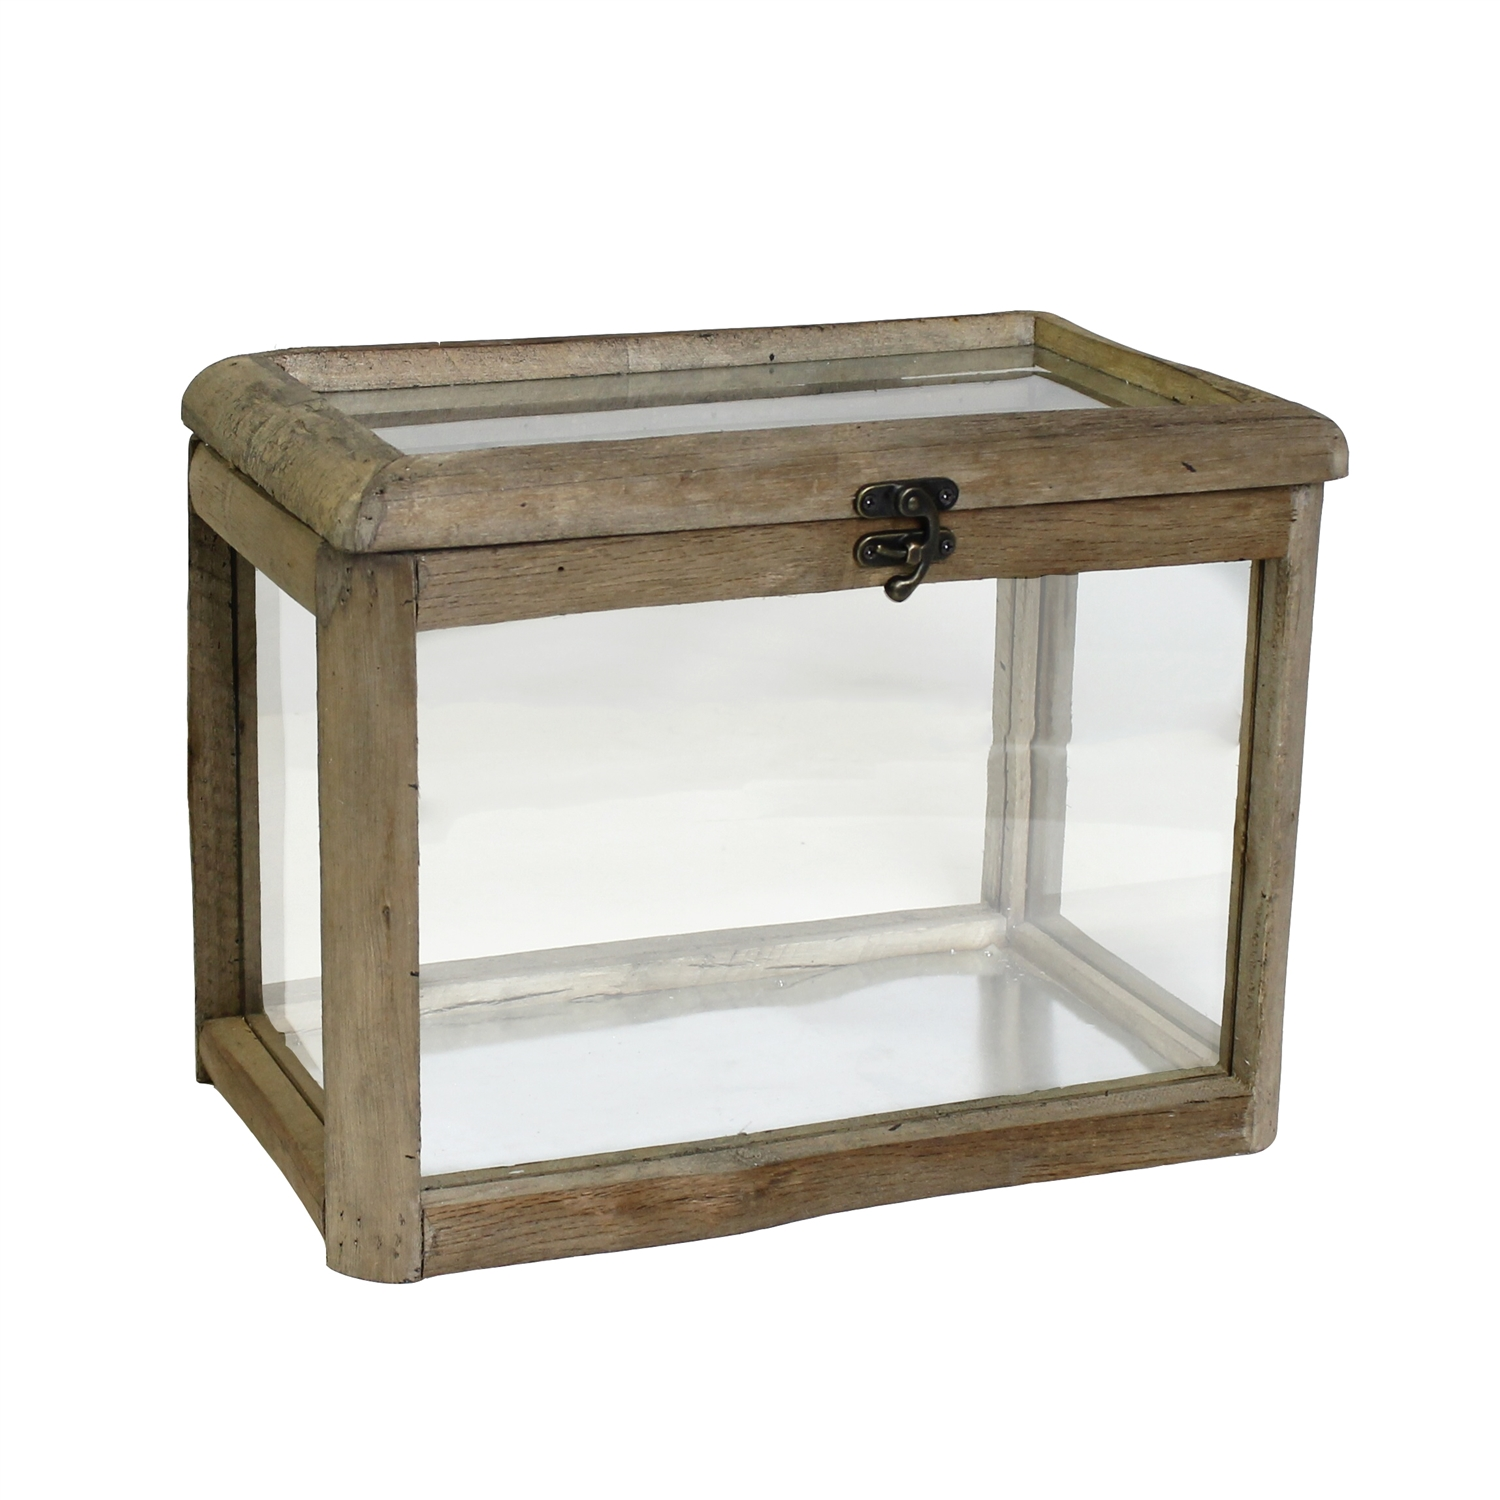 Display Case - Wood and Glass Hinged Display Case